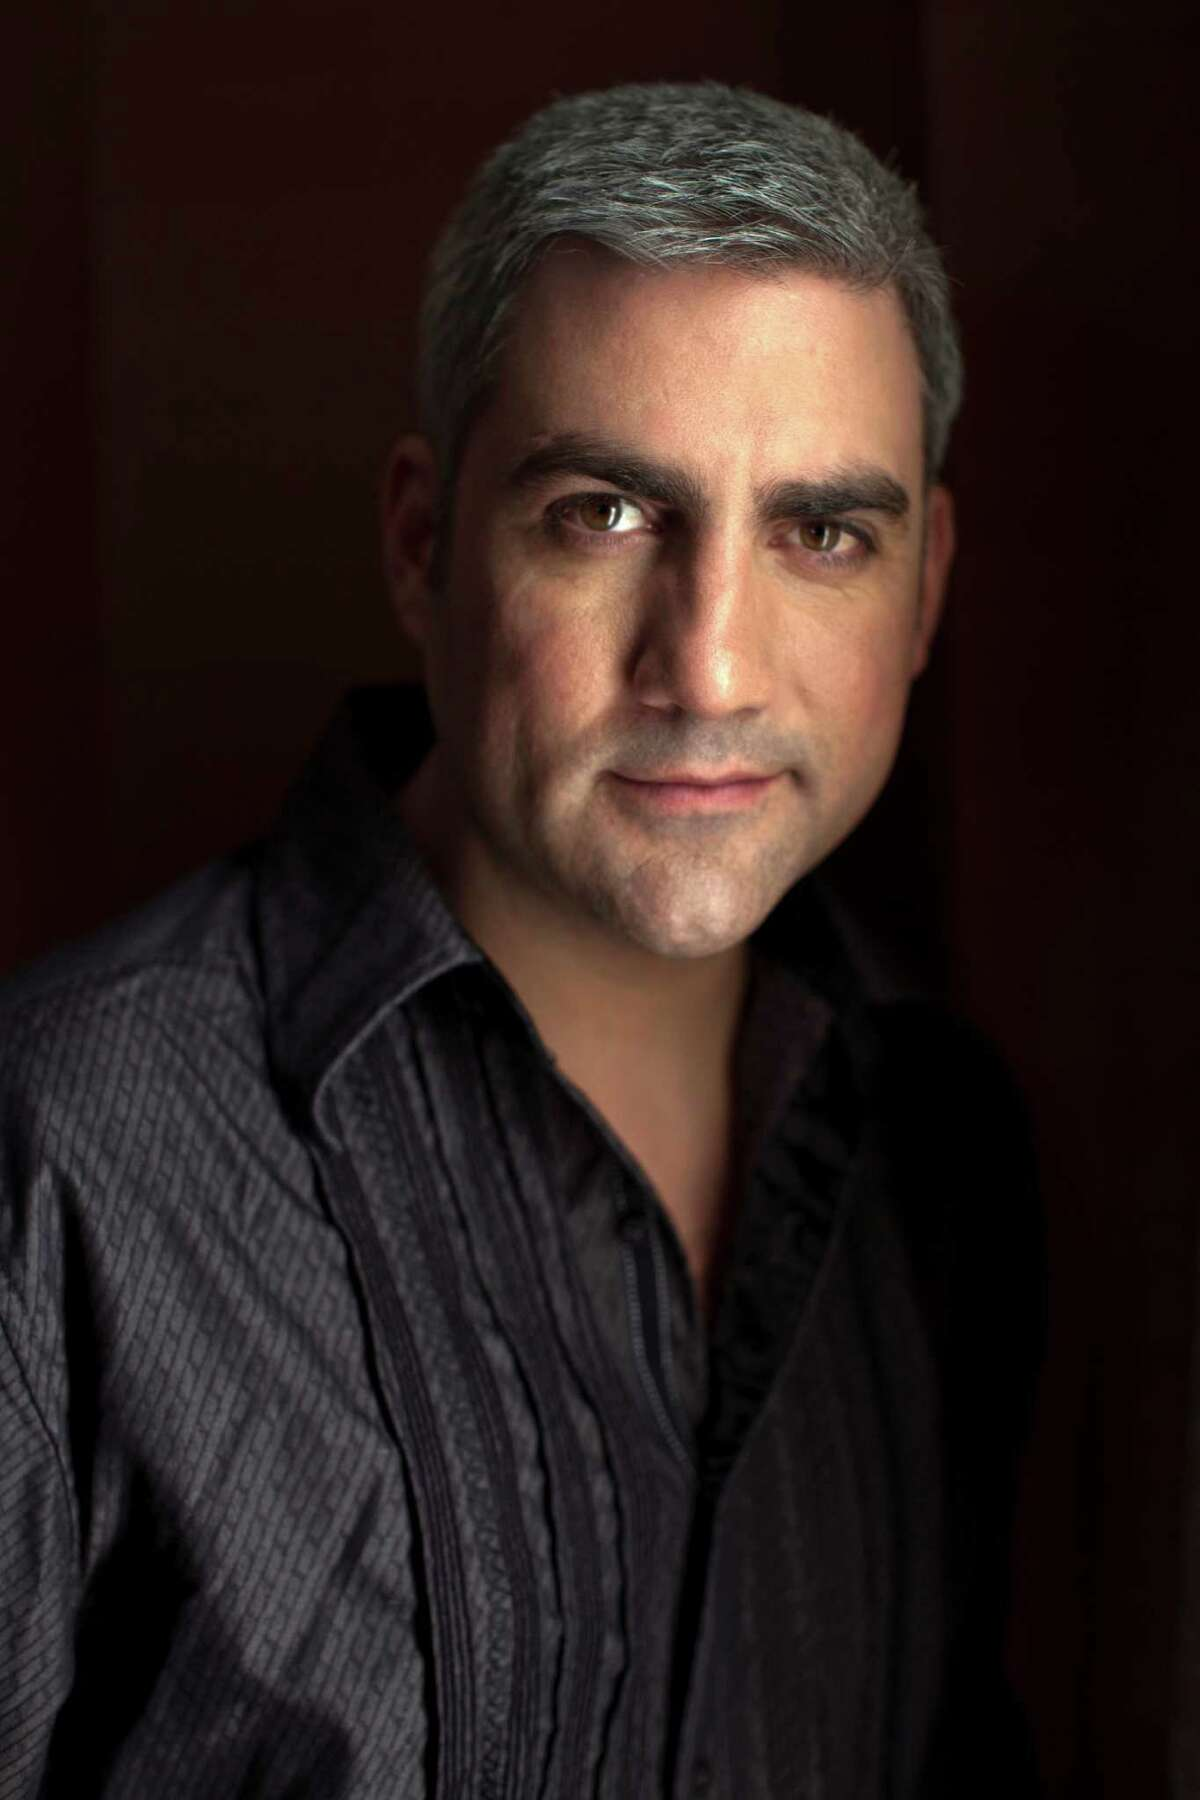 Taylor Hicks will perform at Fairfield Theatre Company's StageOne on Thursday, April 21.